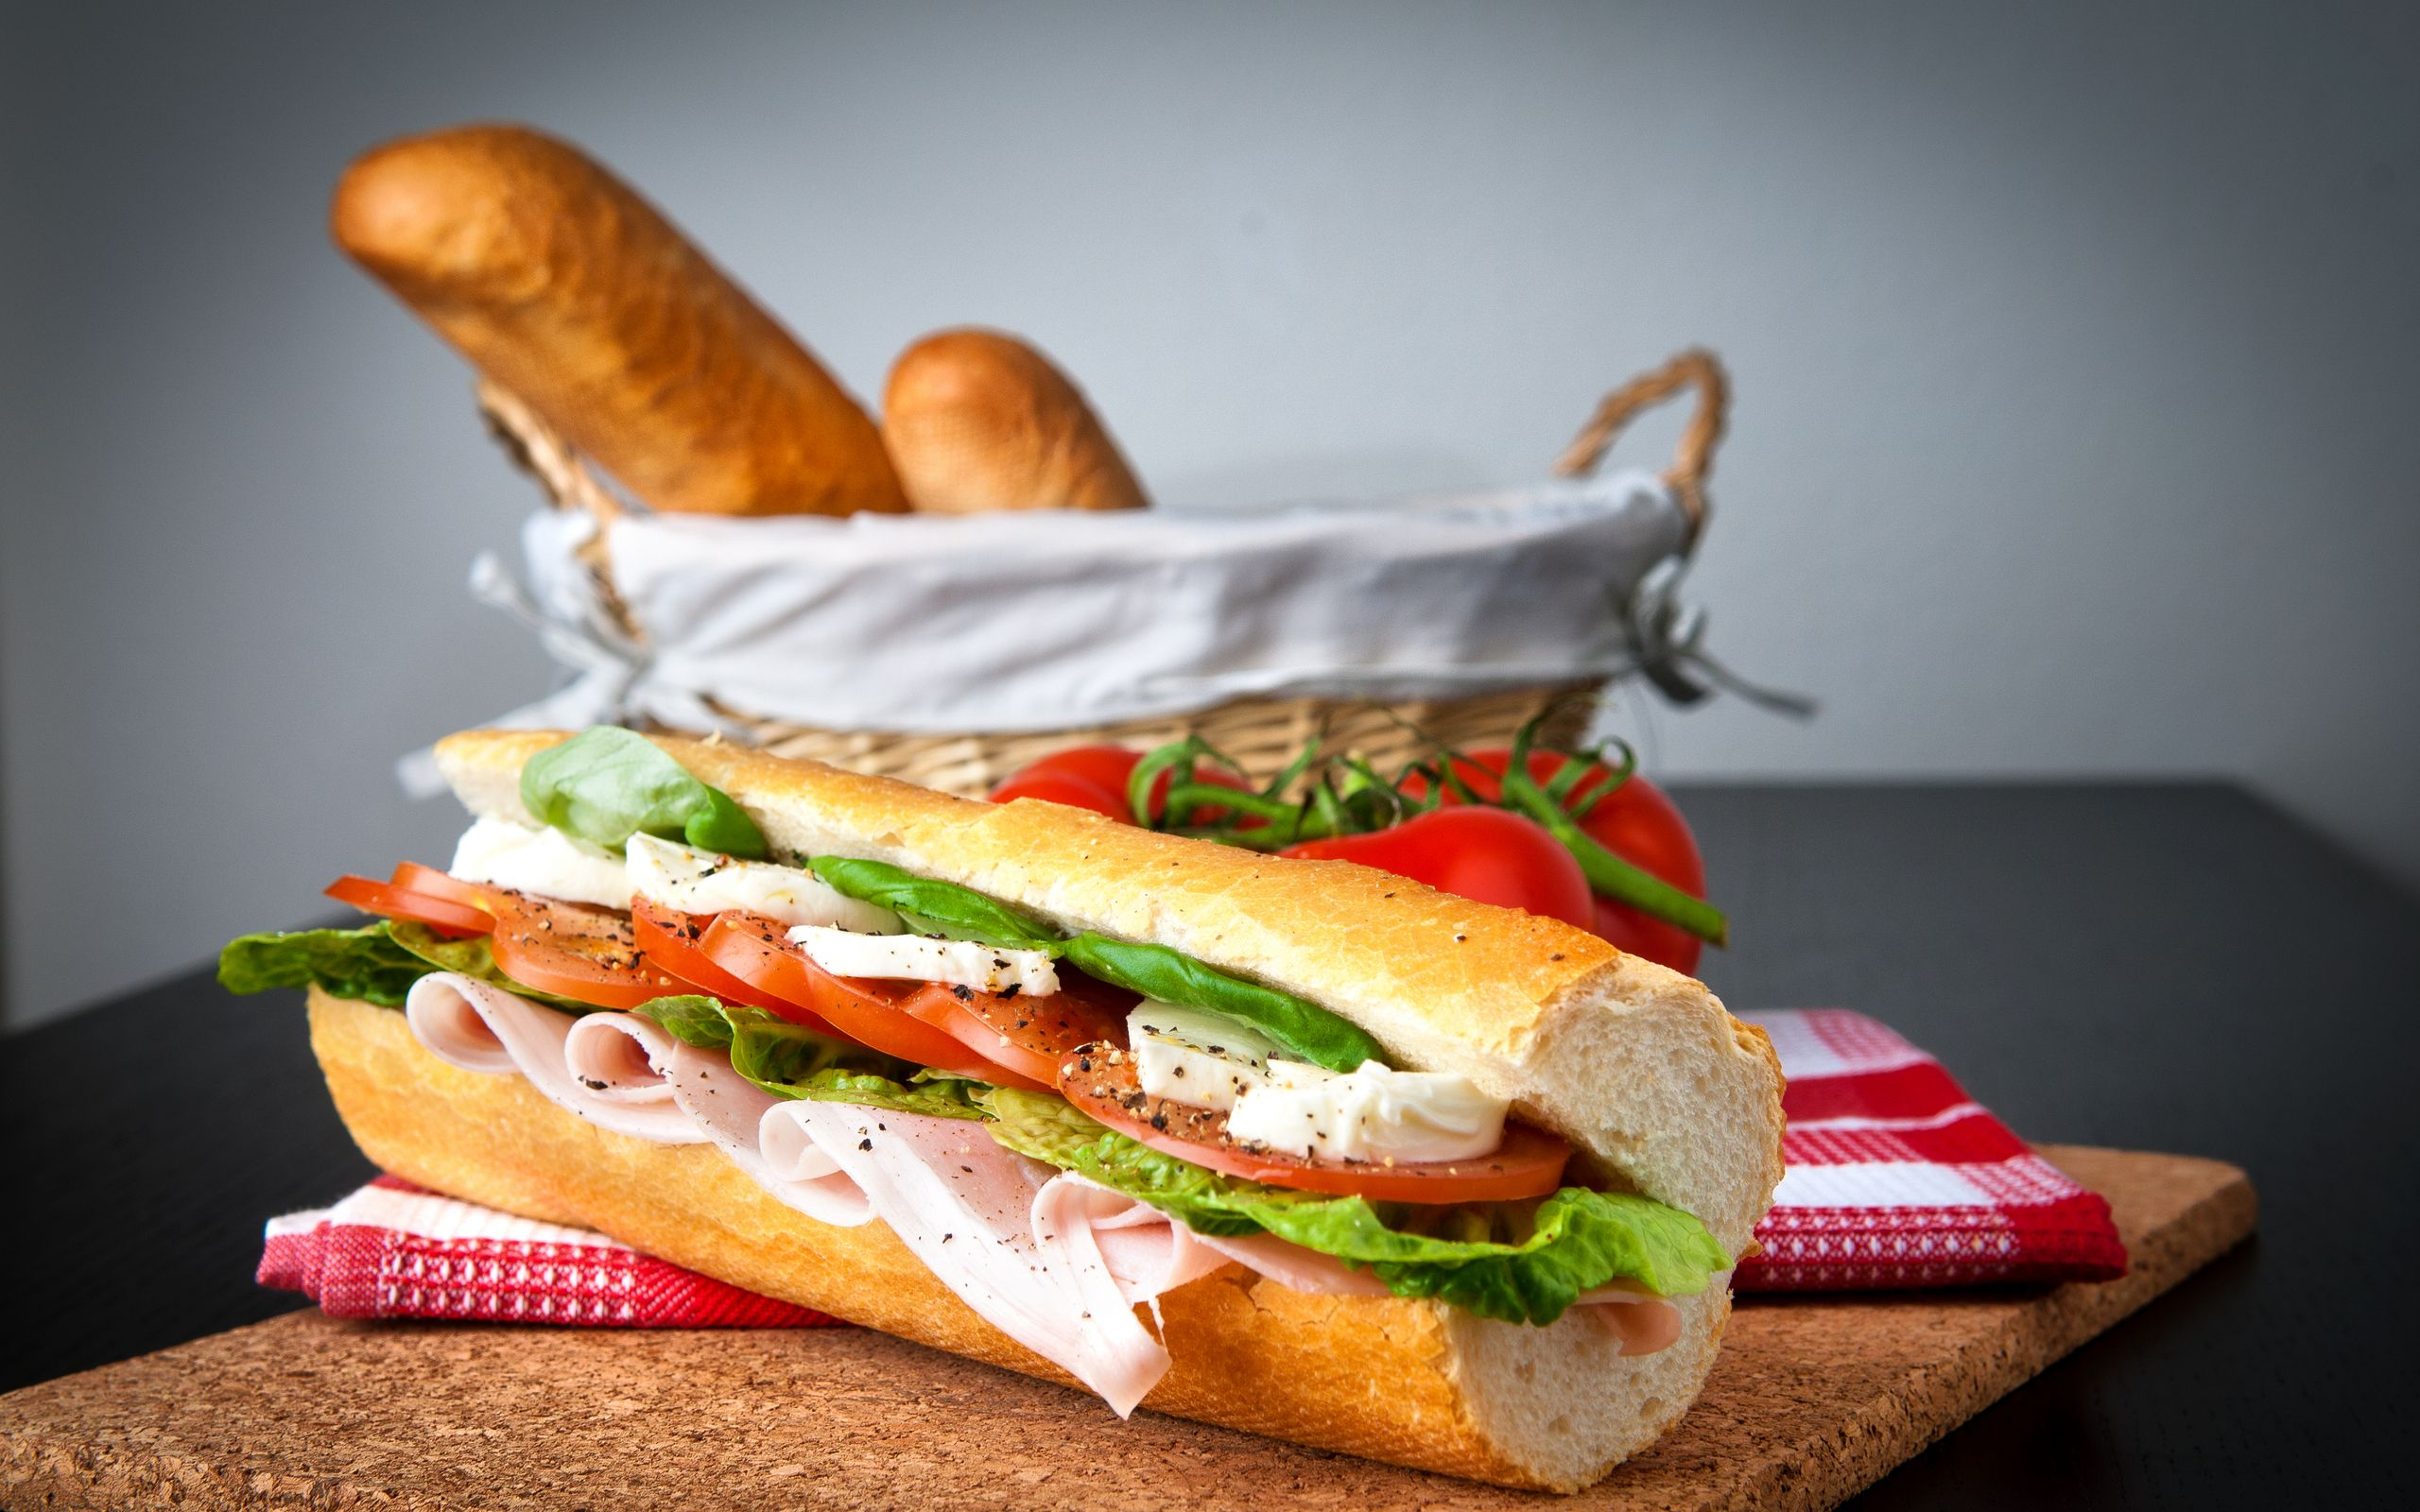 Chowringhee Is A Quick Service Restaurant Chain Specialising In Delicious Vegetarian And Non Vegetarian Rolls This Restaurant Food Food Wallpaper Big Sandwich